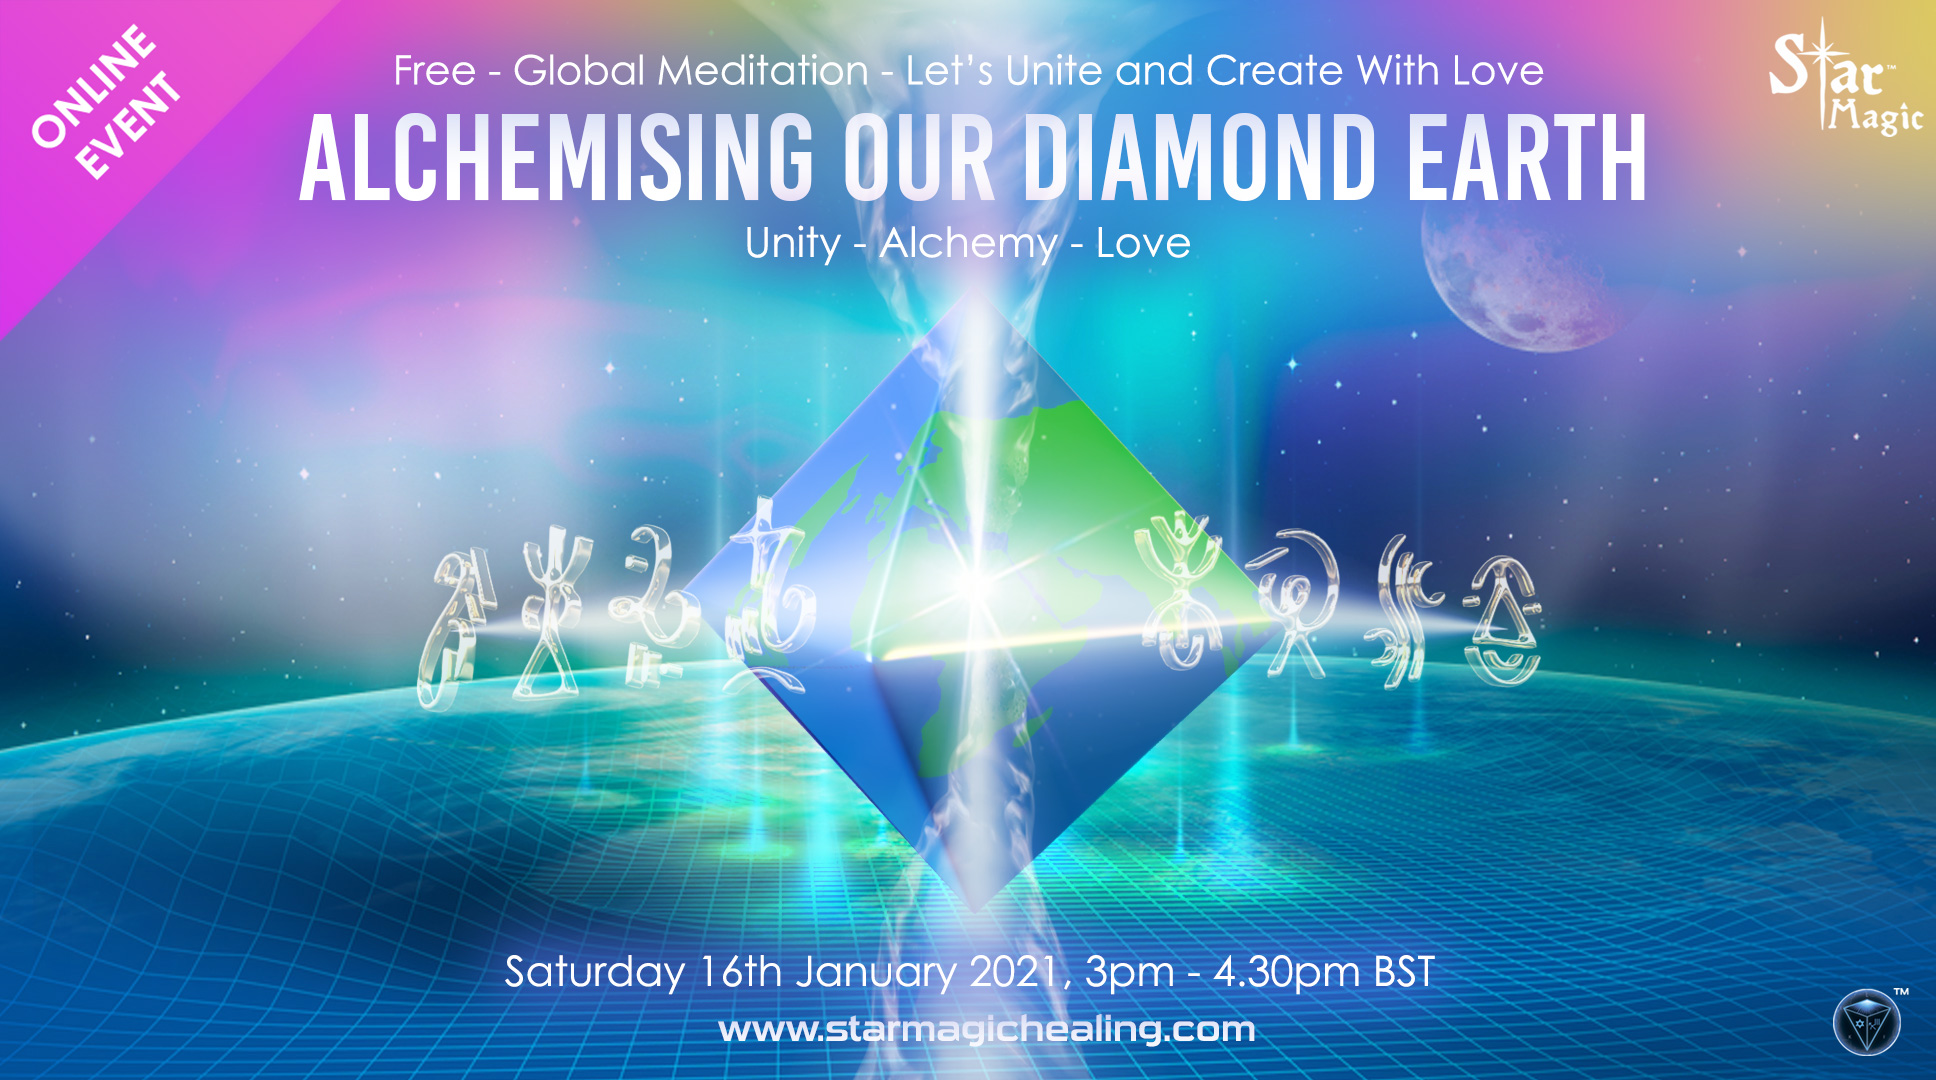 Alchemising Our Diamond Earth, Unity - Alchemy - Love